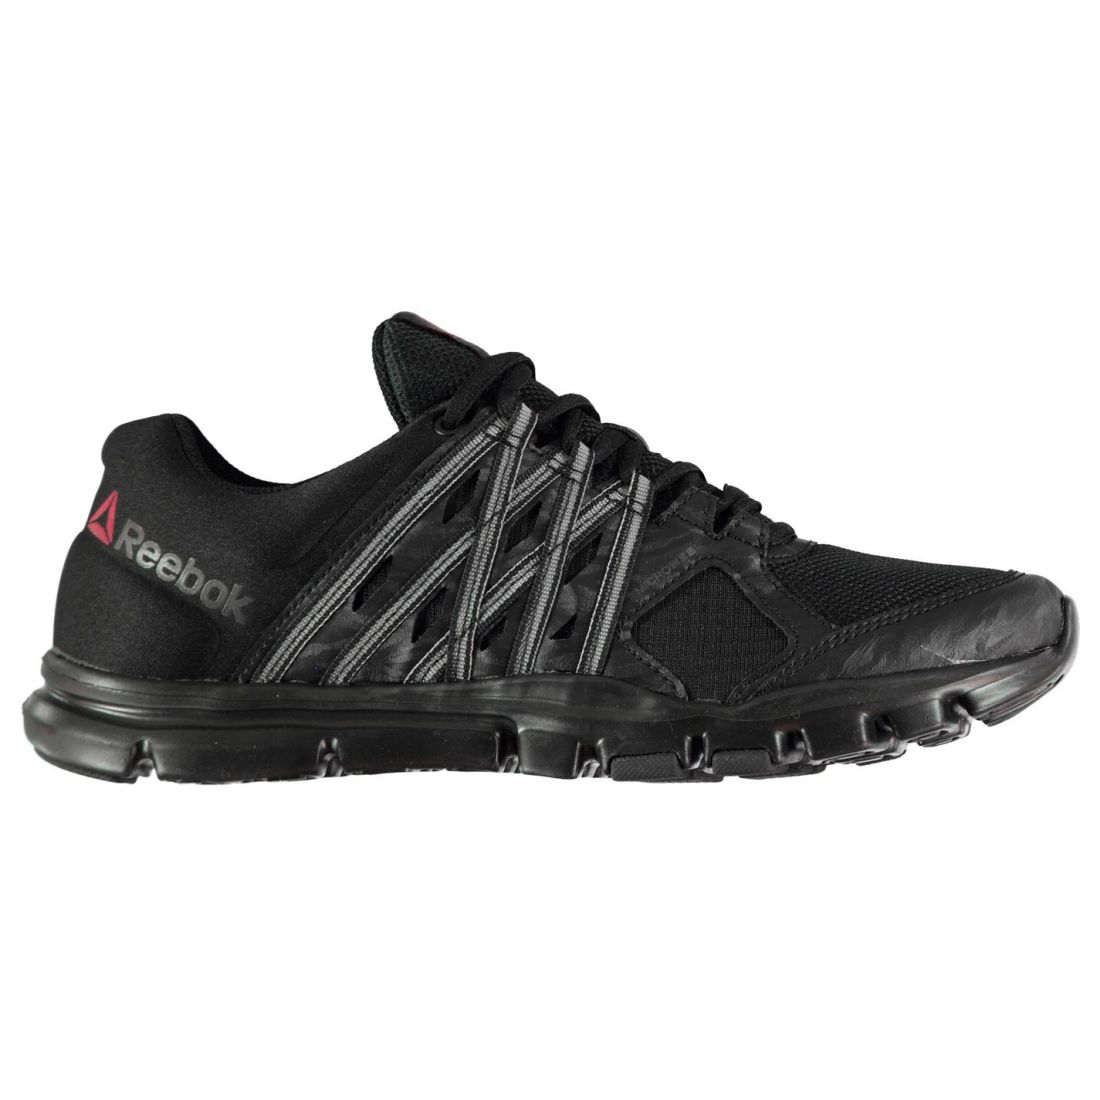 Reebok Gents Mens Yourflex 8 Sneakers Trainers Laced Textile Shoes Microweb